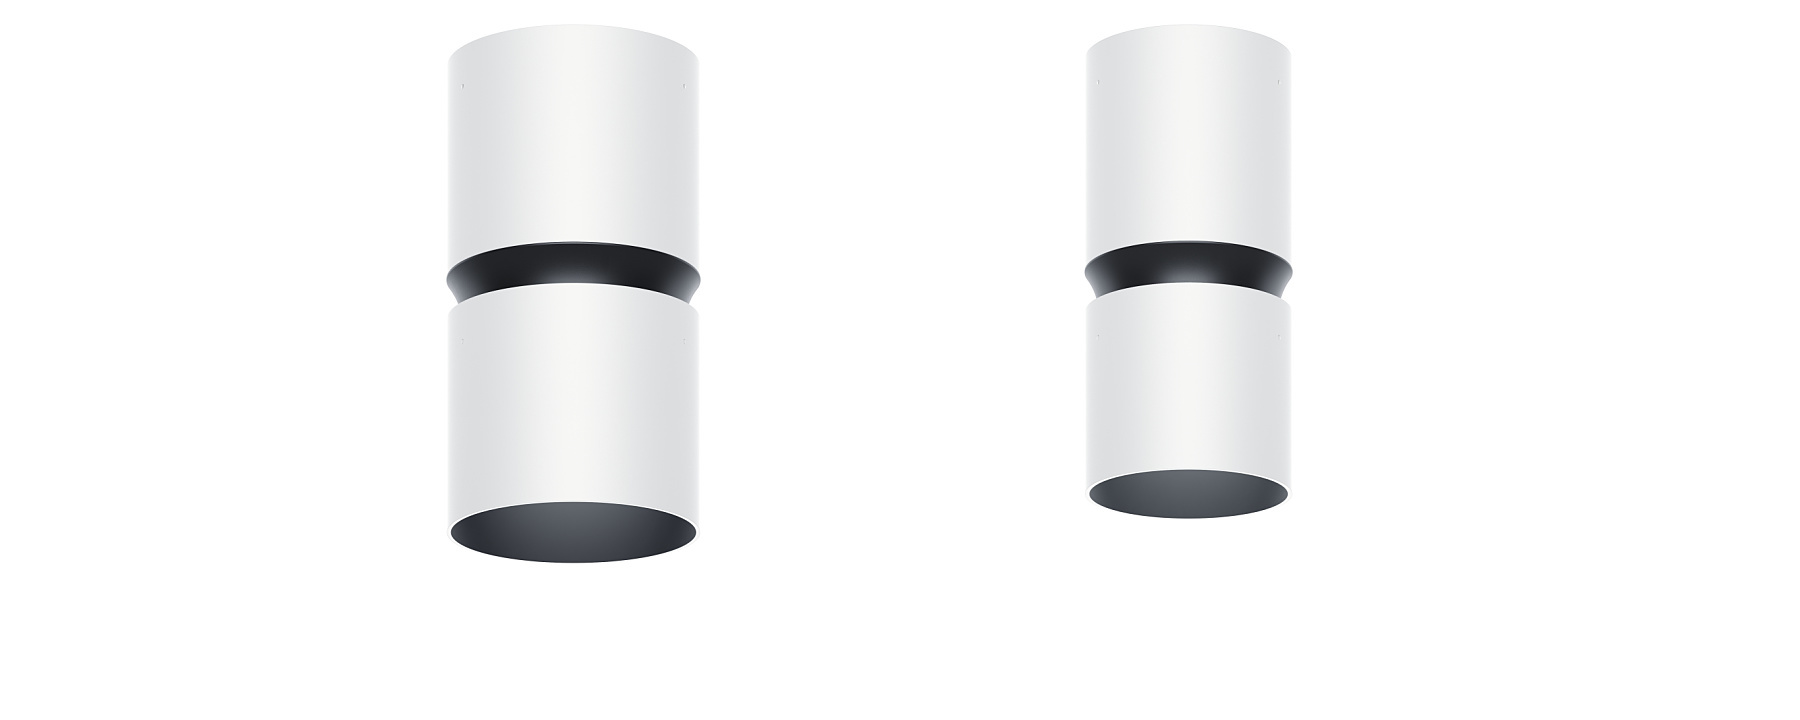 Atrium double focus - Surface-mounted luminaires